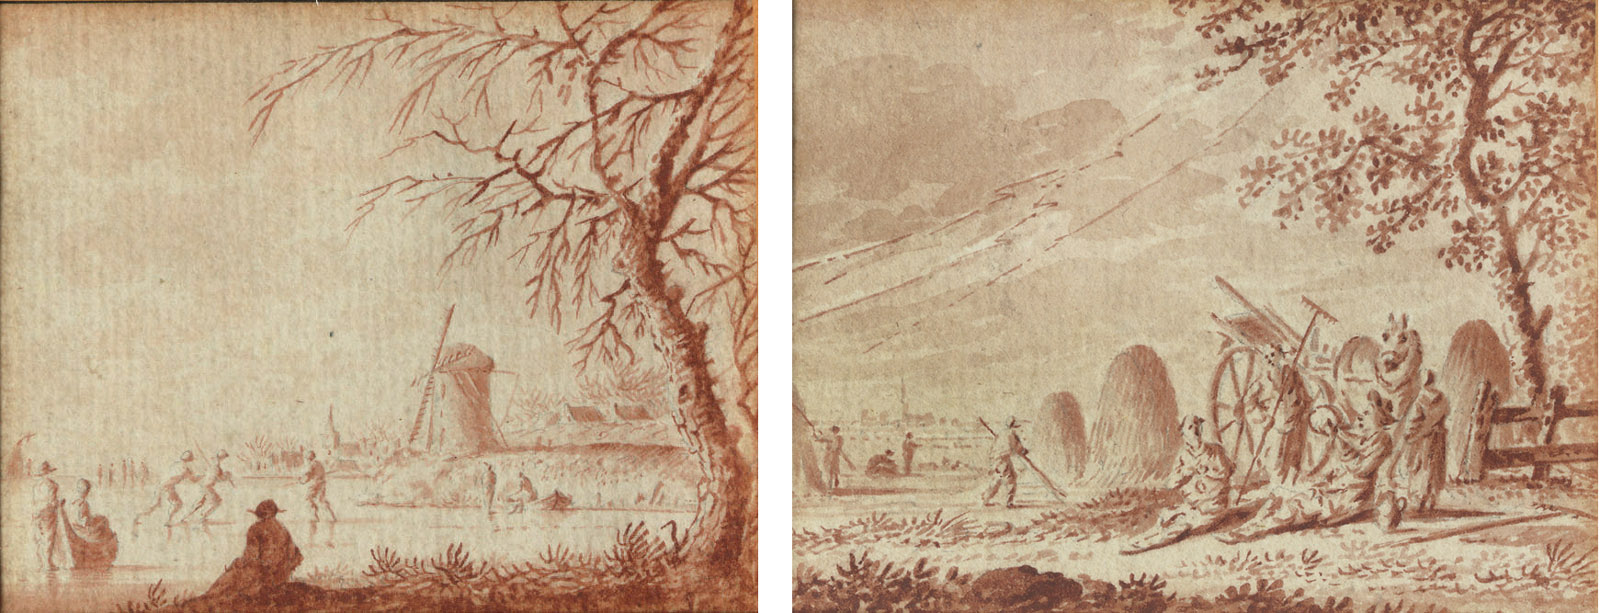 Farmers harvesting the hay; and A winter landscape with skaters on the ice